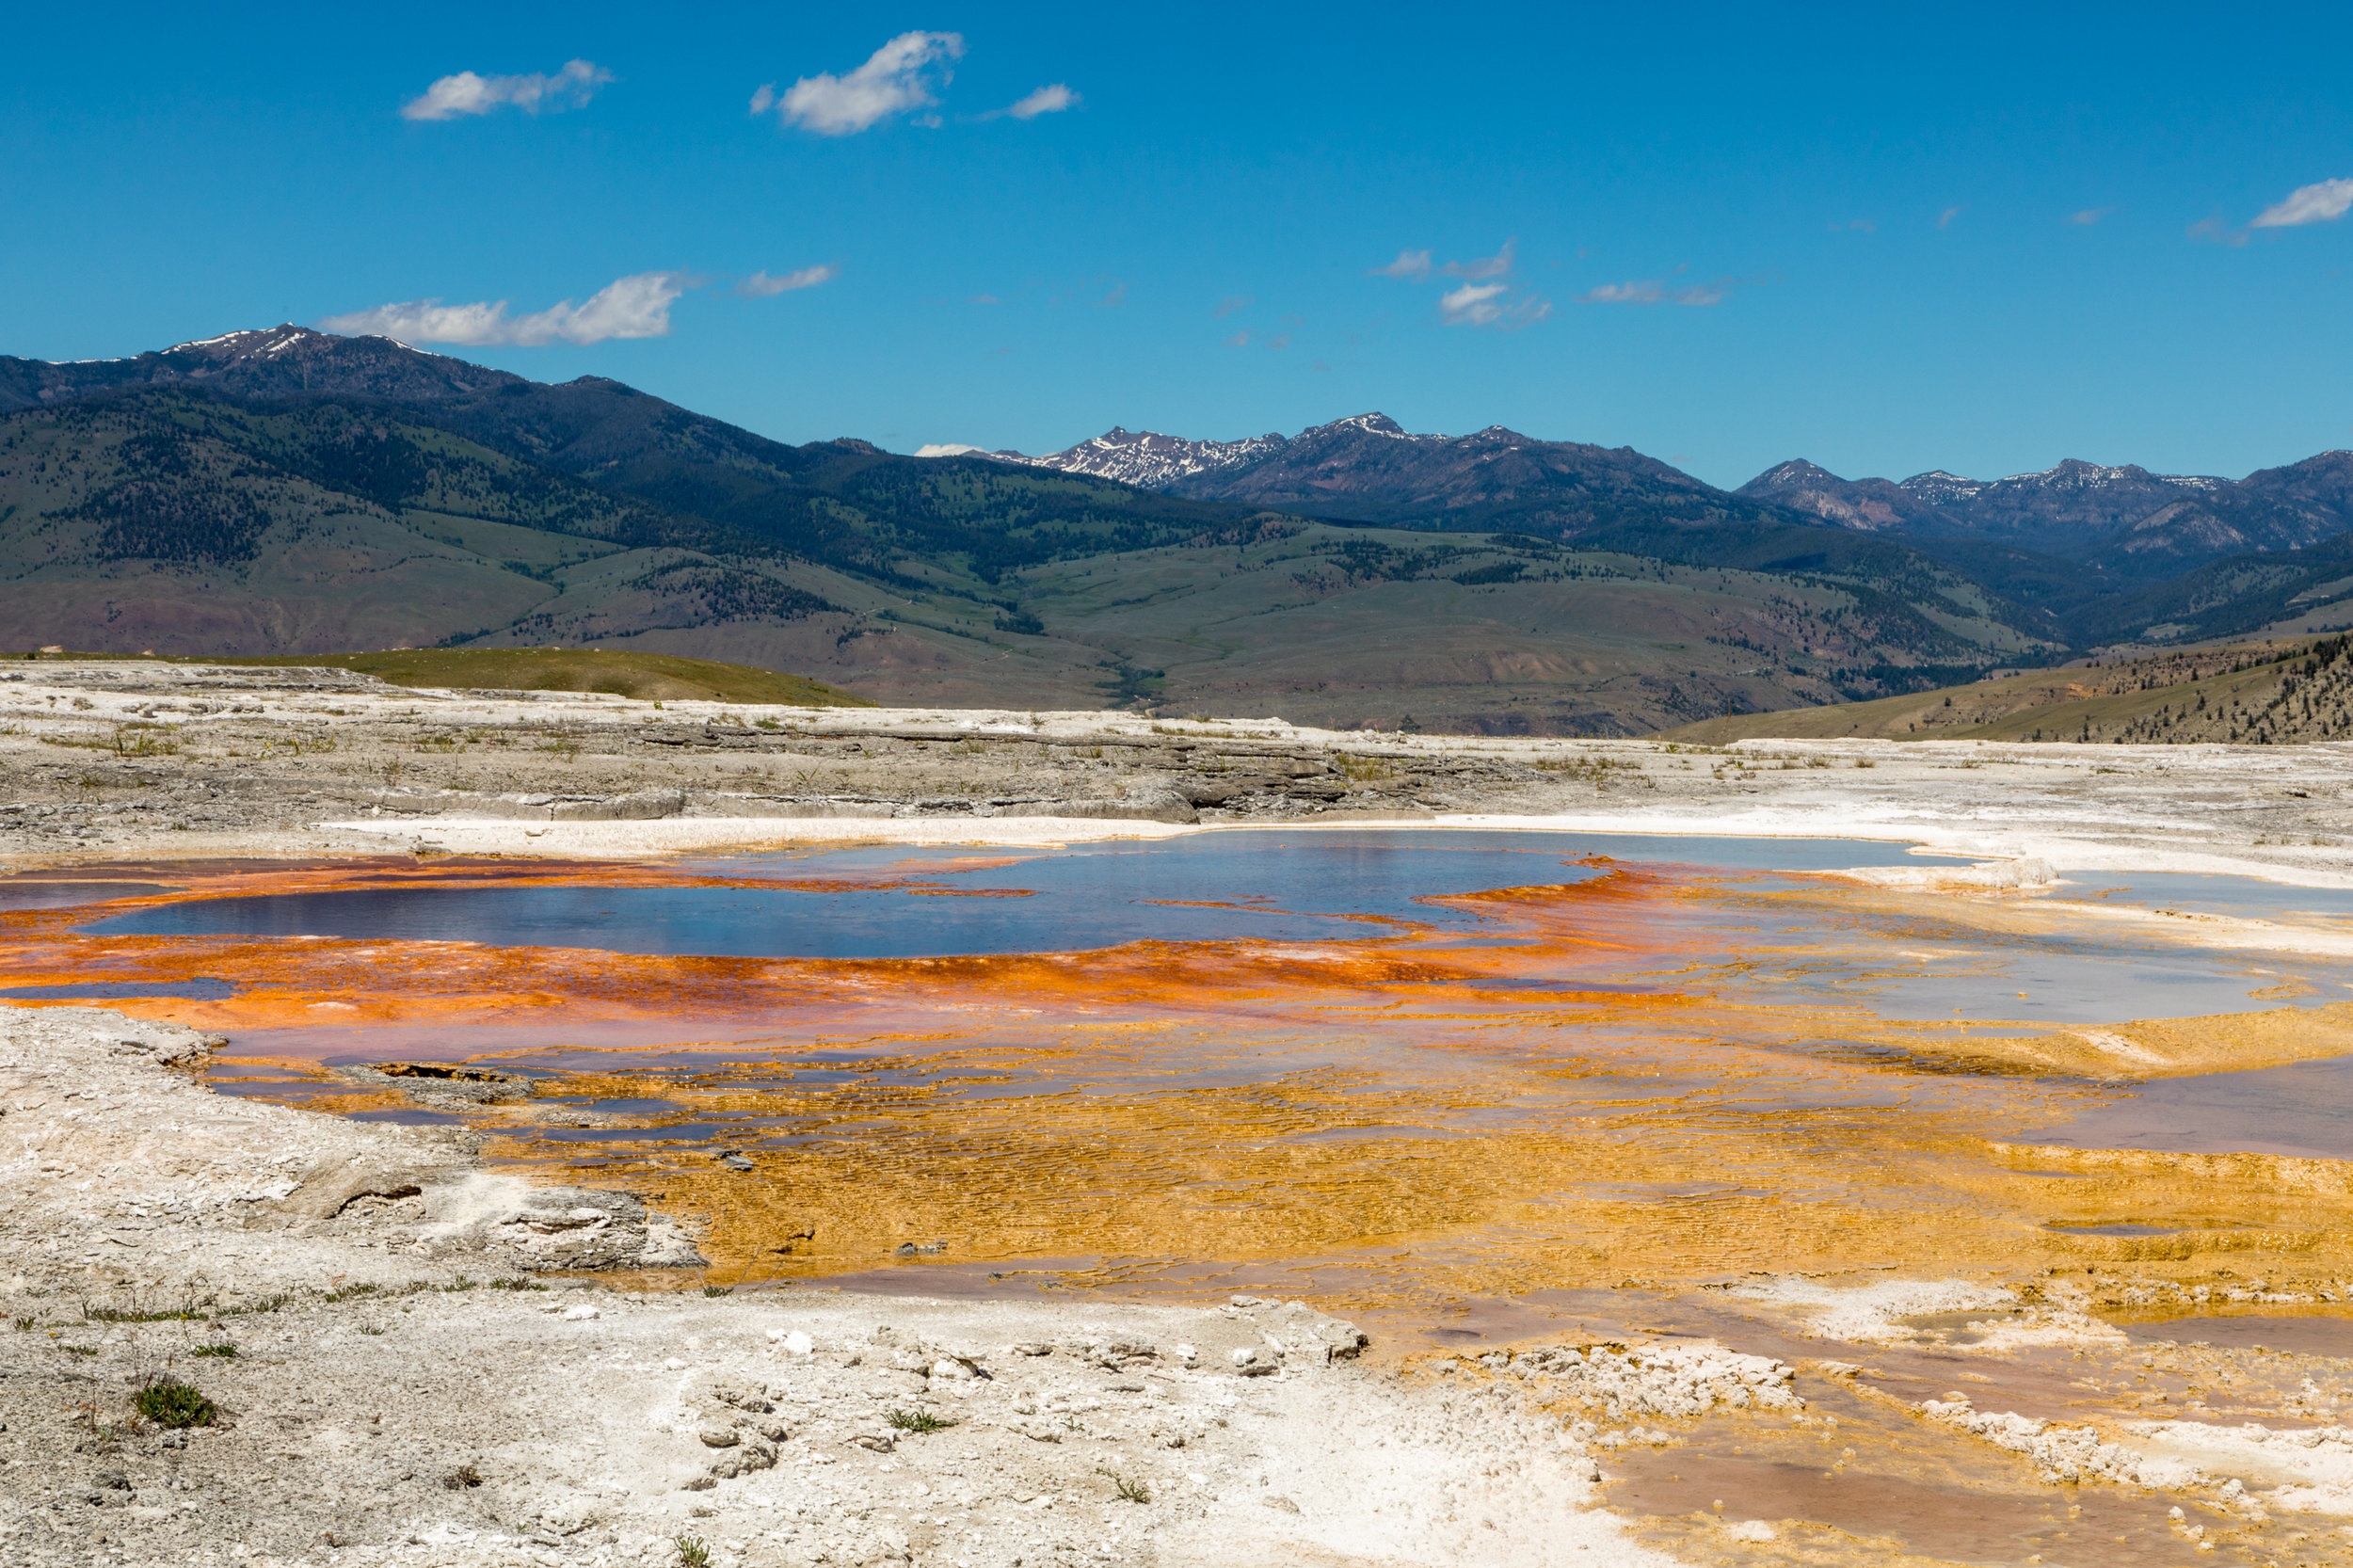 Mammoth Hot Springs, Yellowstone National Park, Image # 7393